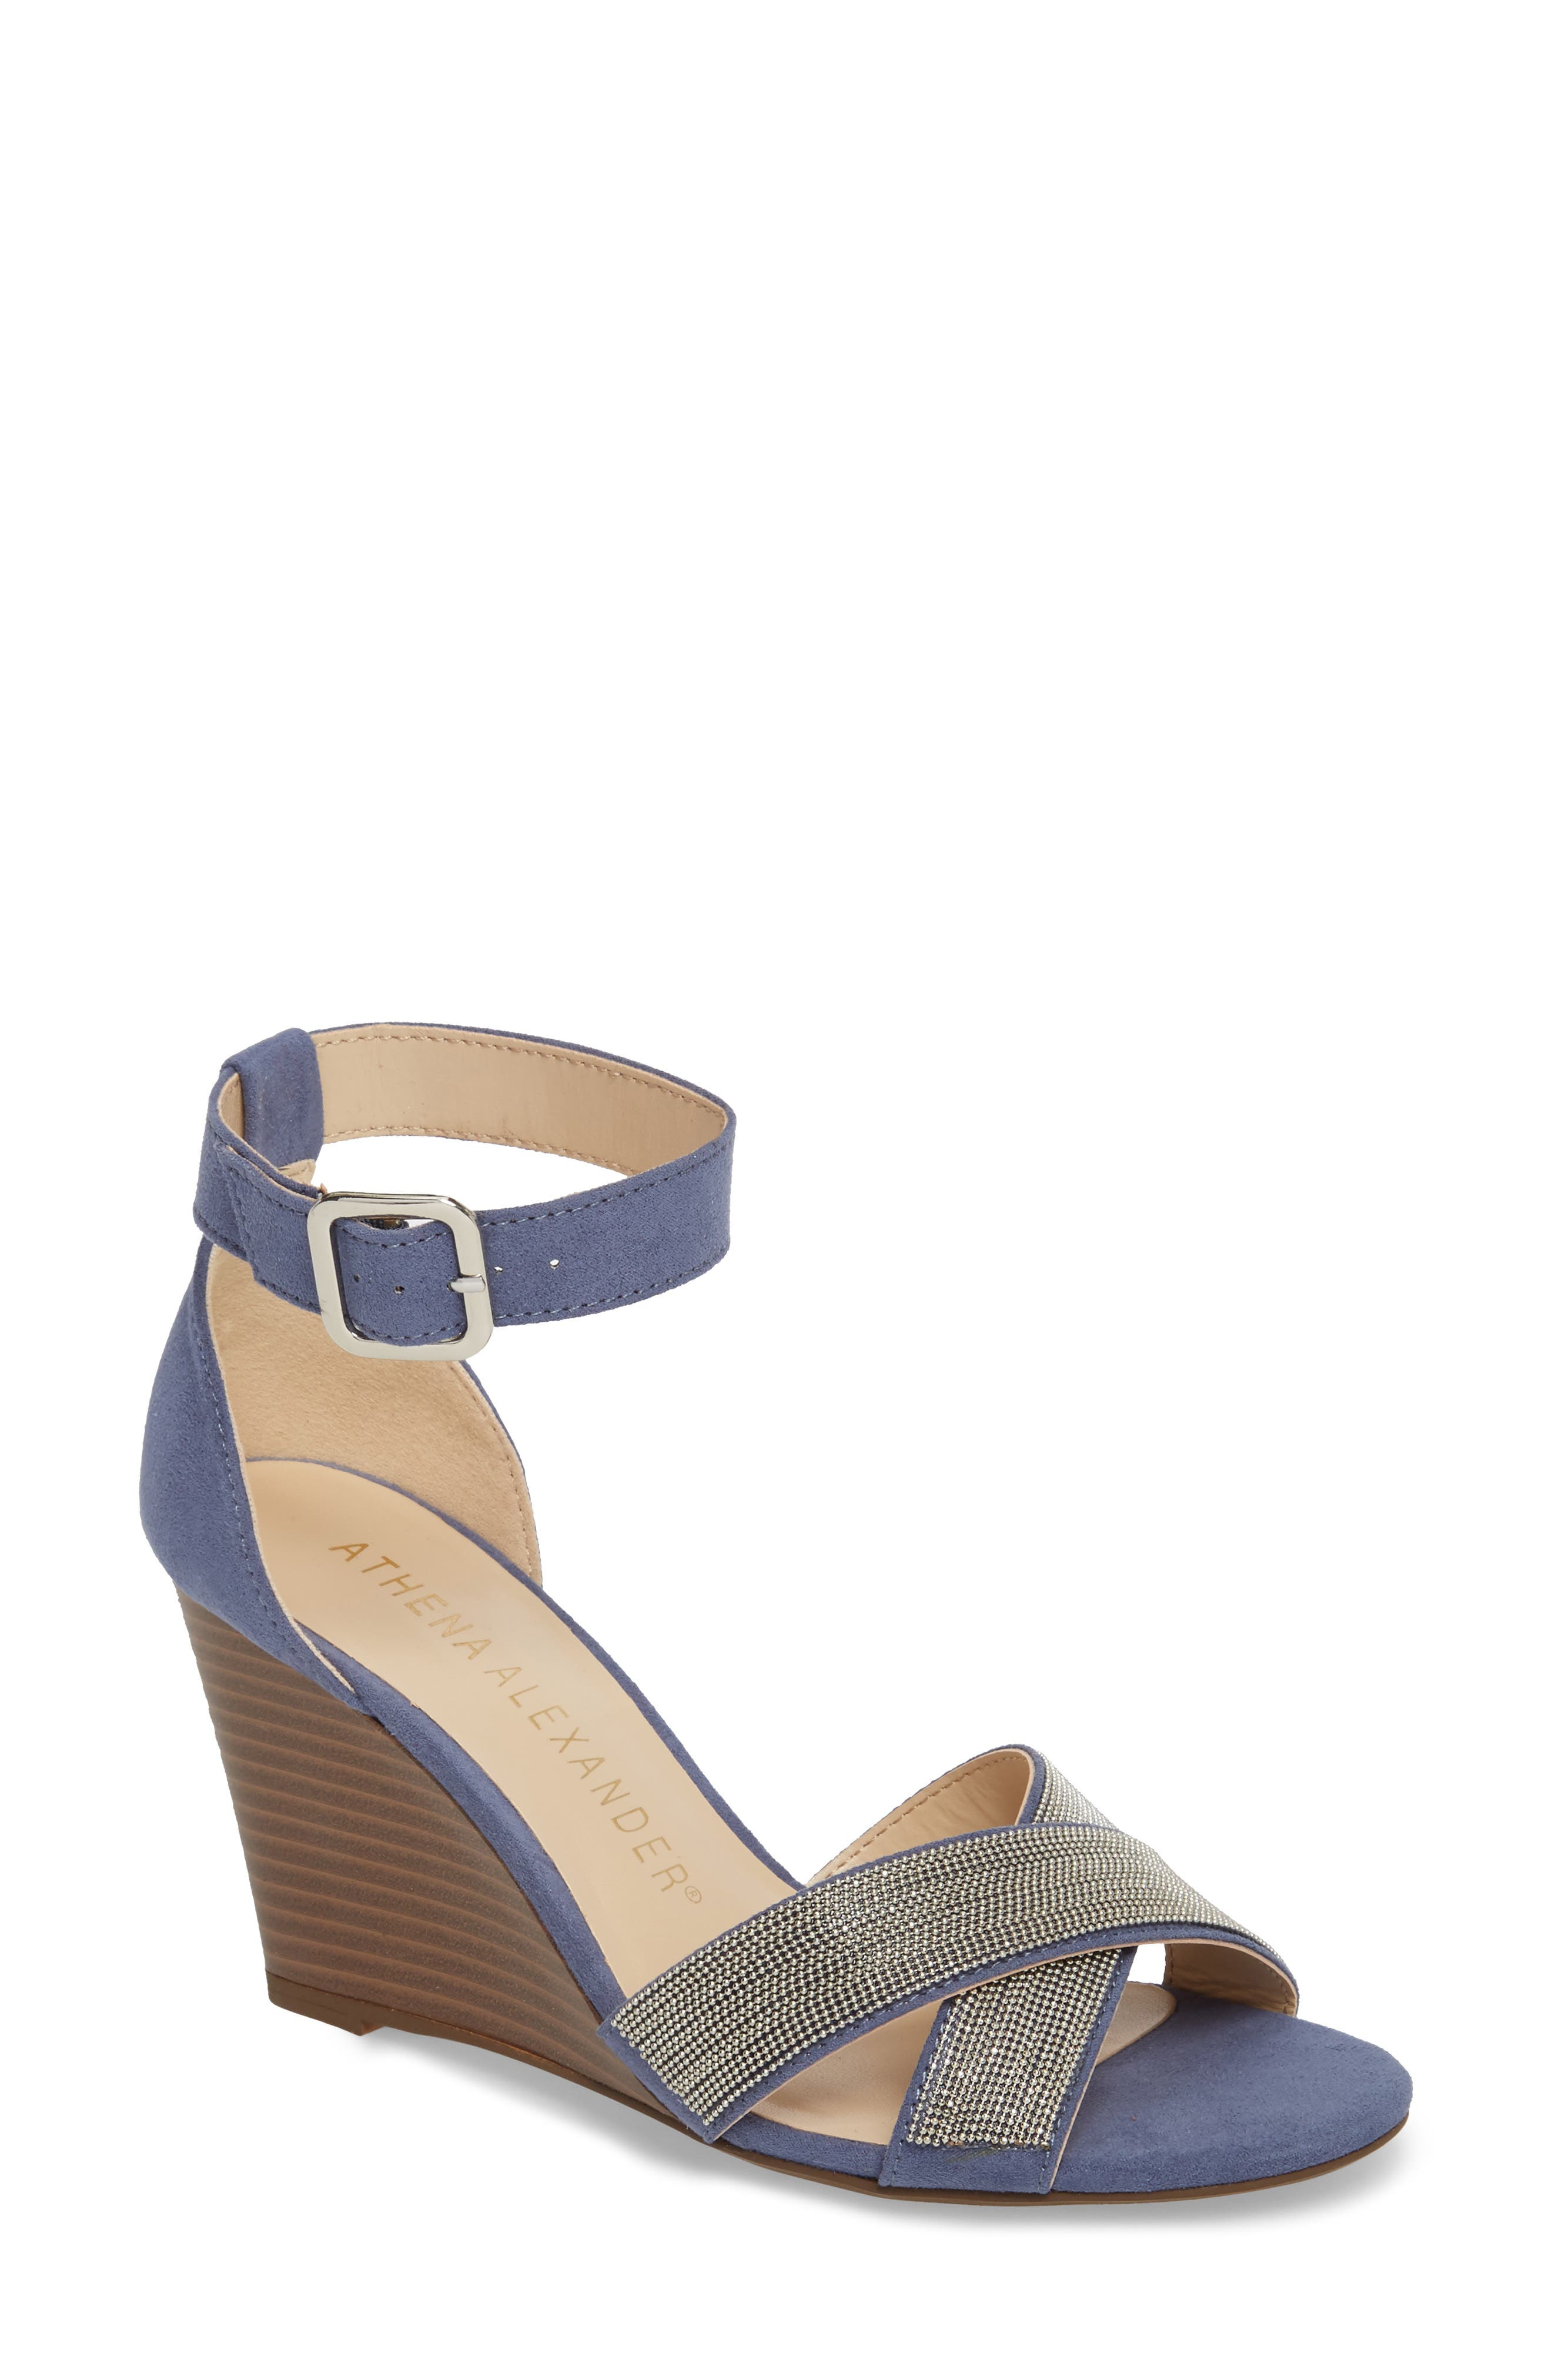 Zorra Wedge Sandal,                         Main,                         color, Blue Suede